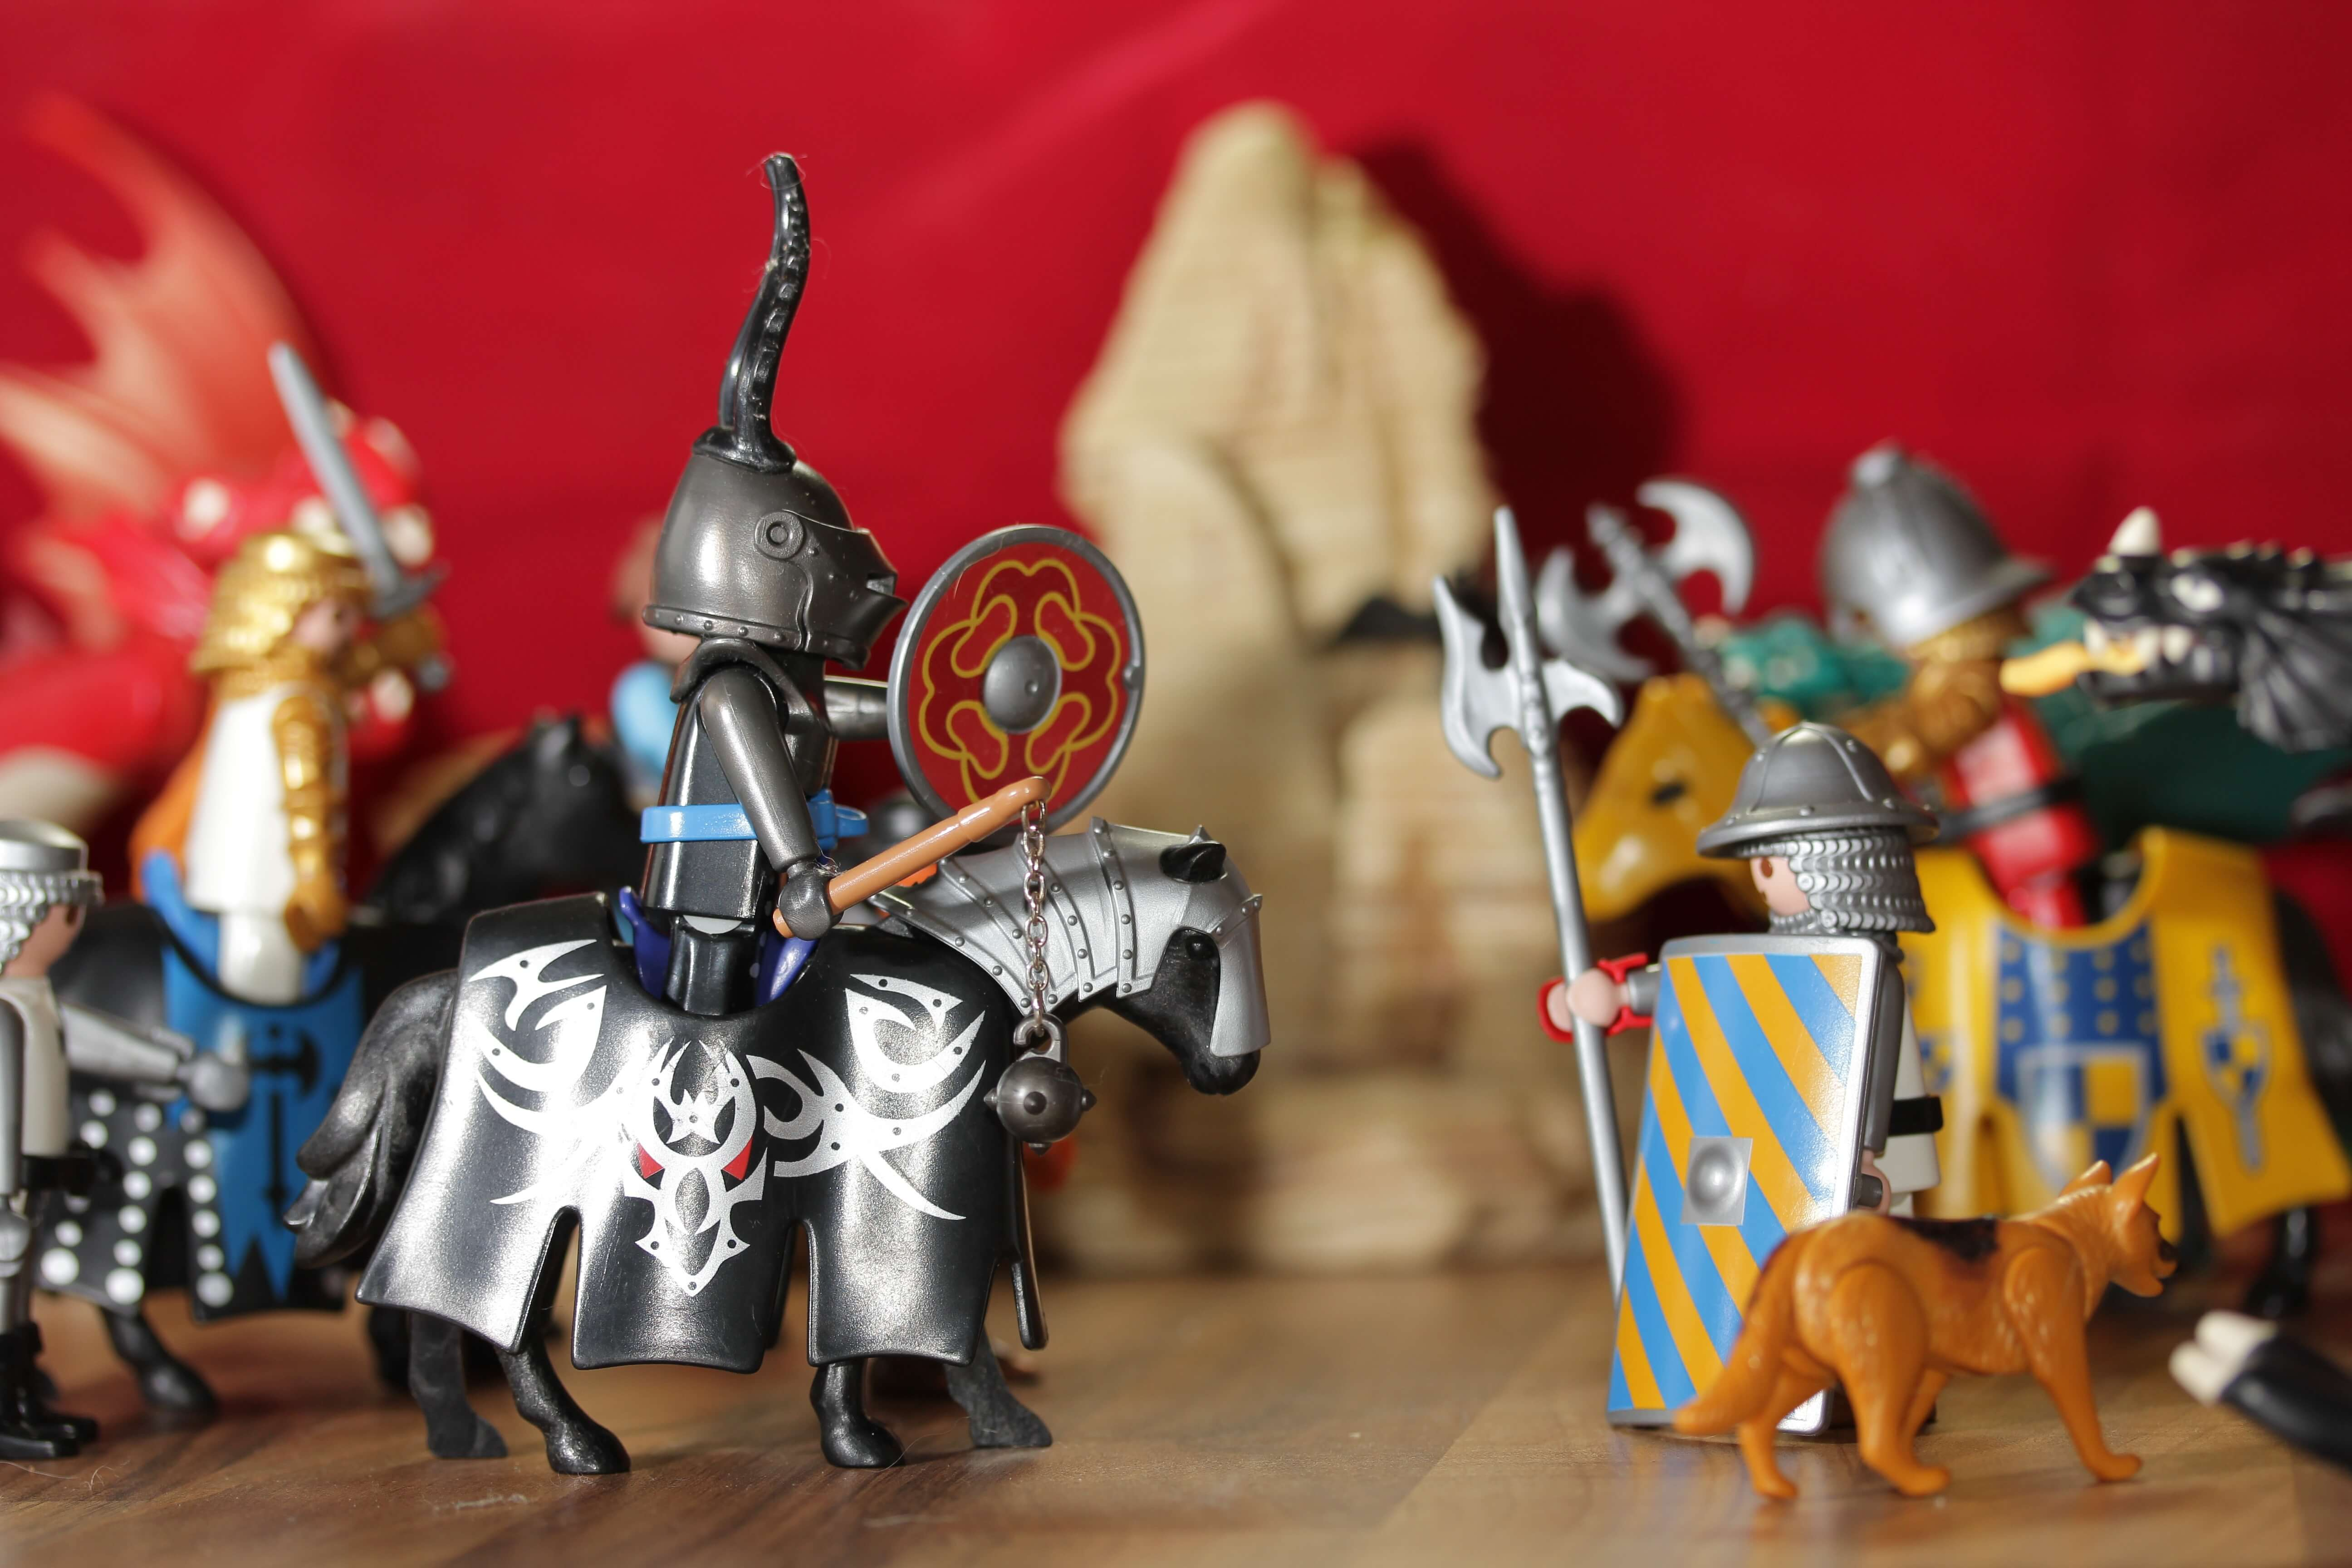 A photograph of medieval Playmobil children's toys, including a knight on a horse with a lance, as well as spearmen